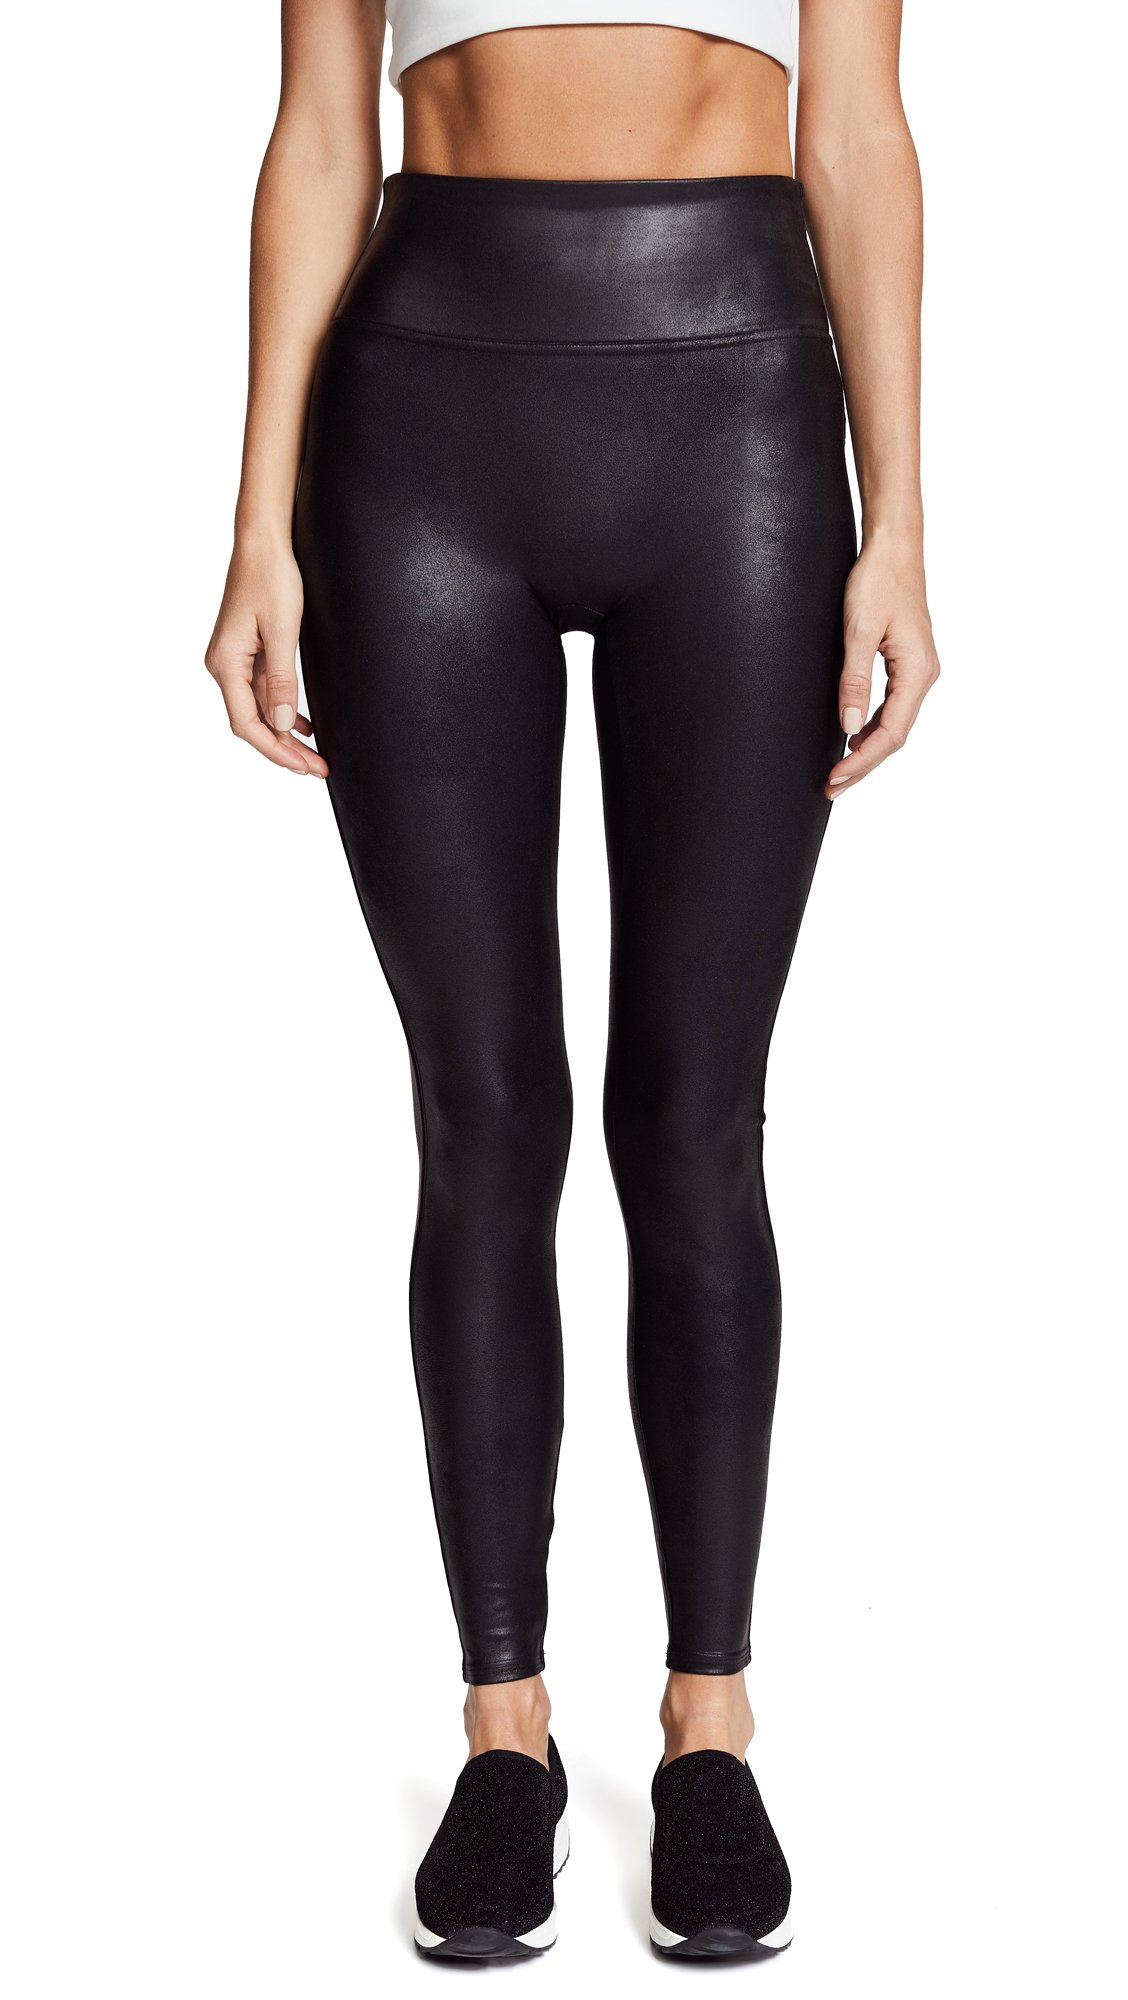 Spanx Women's Ready-to-Wow!? Faux Leather Leggings Black MD X 30